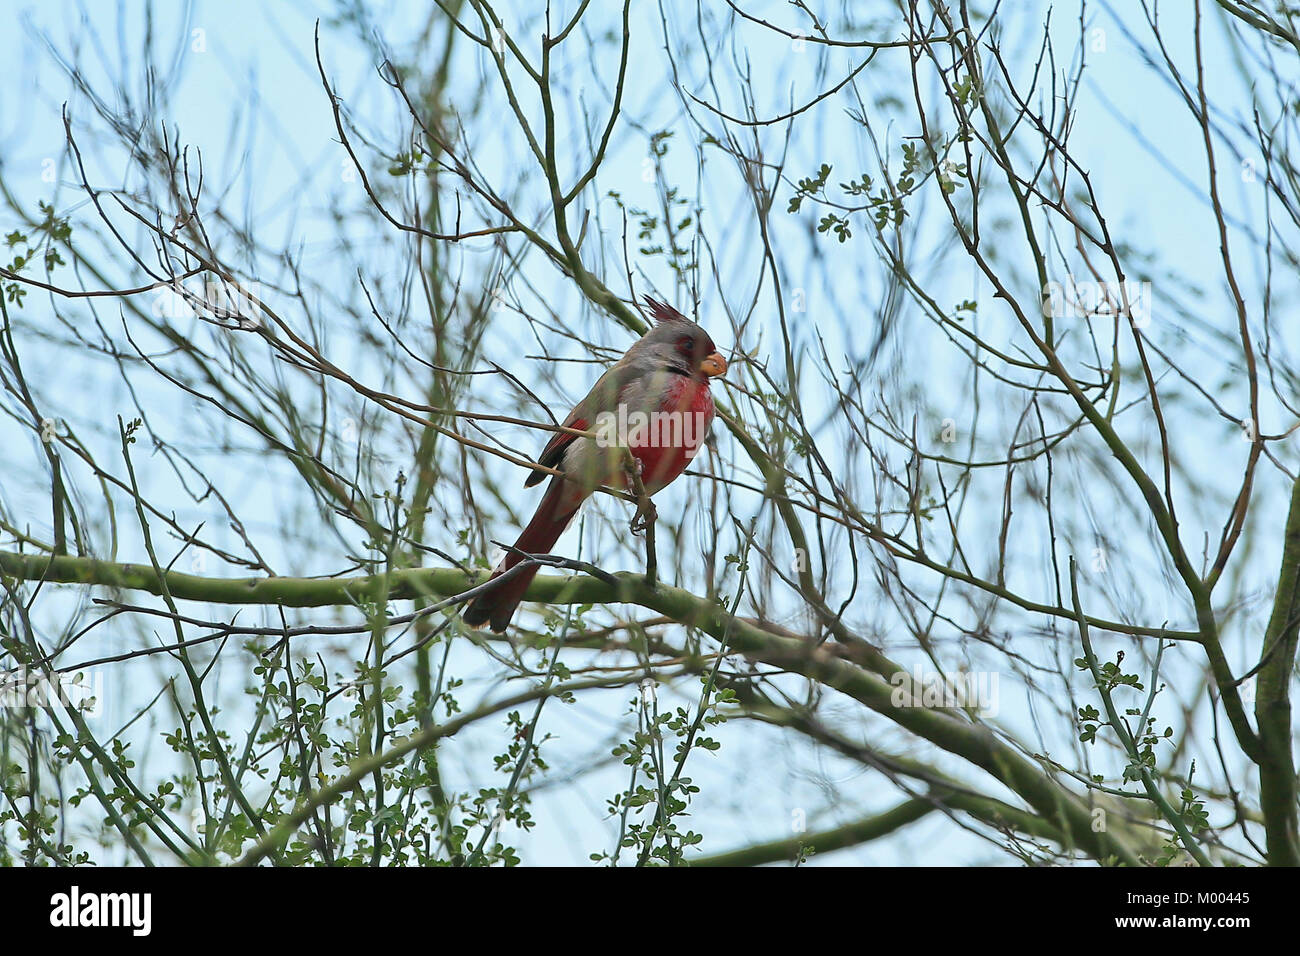 cardenal - Stock Image